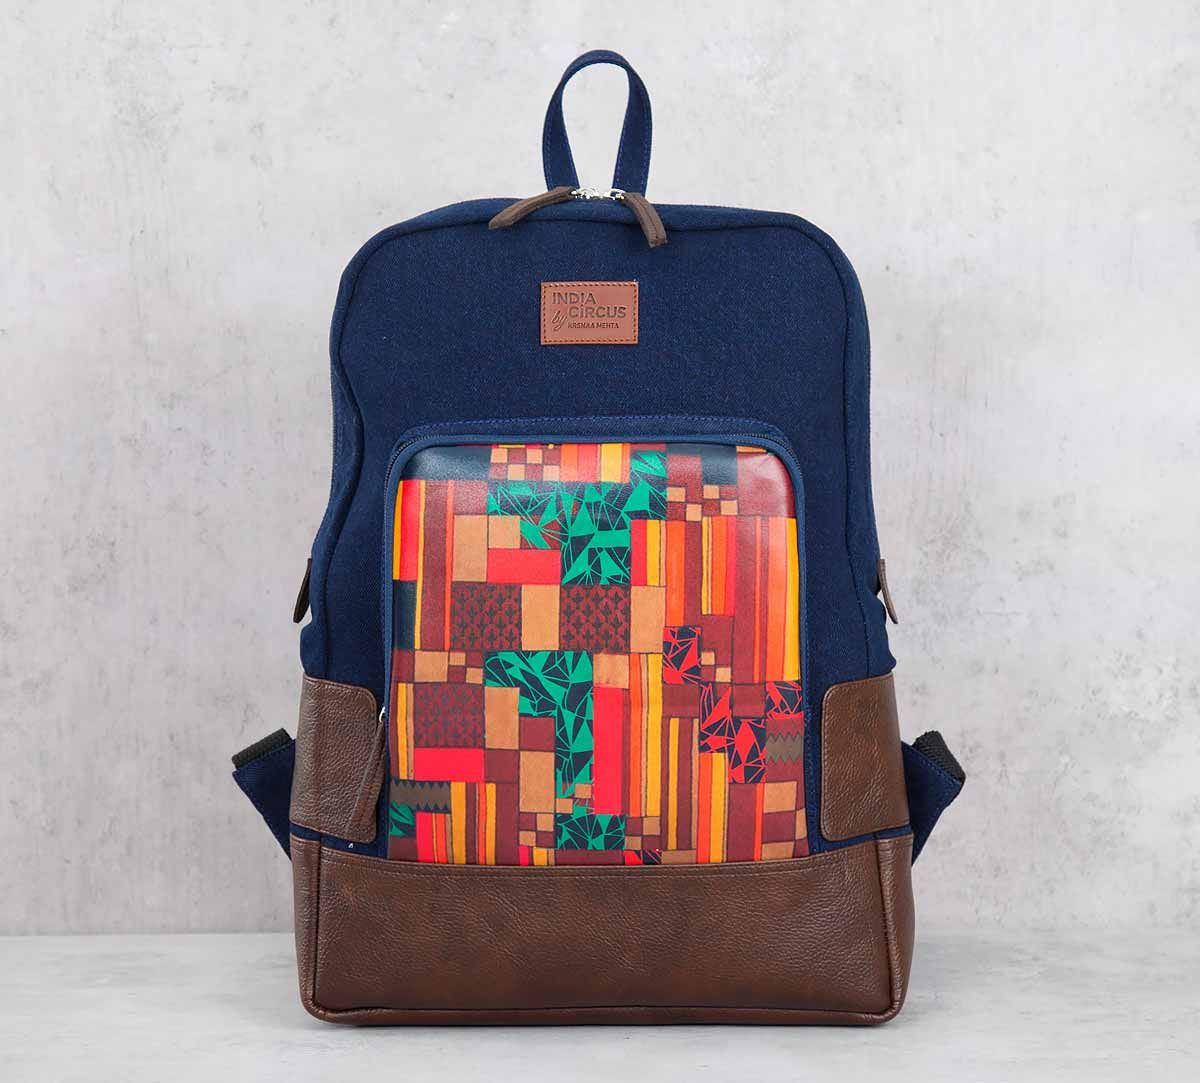 India Circus Tiled Extravaganza Denim Backpack